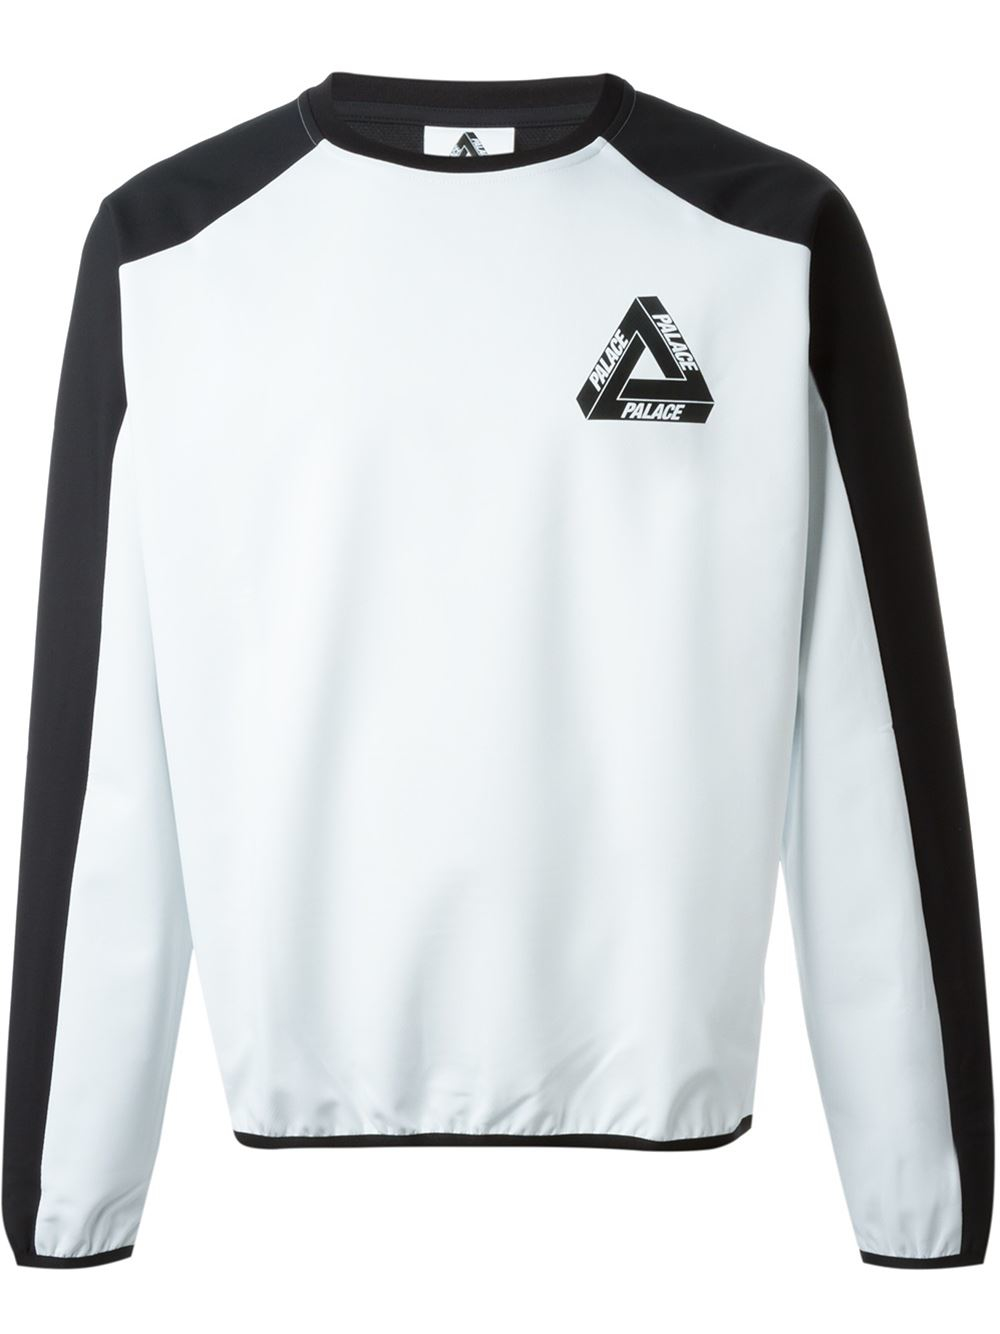 5f0f72530a adidas Originals ' X Palace' T-shirt in White for Men - Lyst